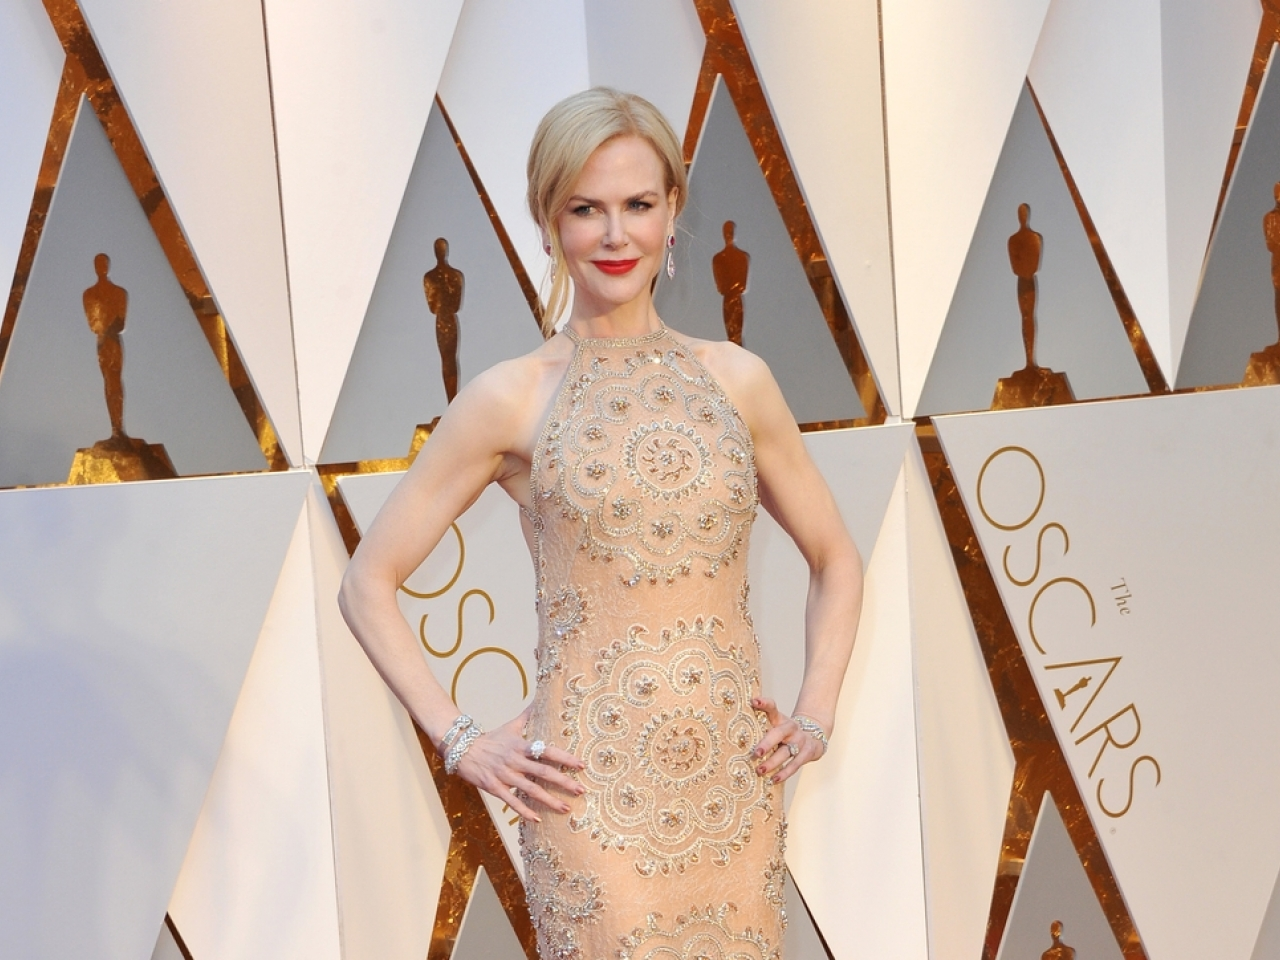 Nicole Kidman was allowed to skip quarantine after reportedly arriving in the SAR on a private jet last week to film a TV series. File photo: Shutterstock